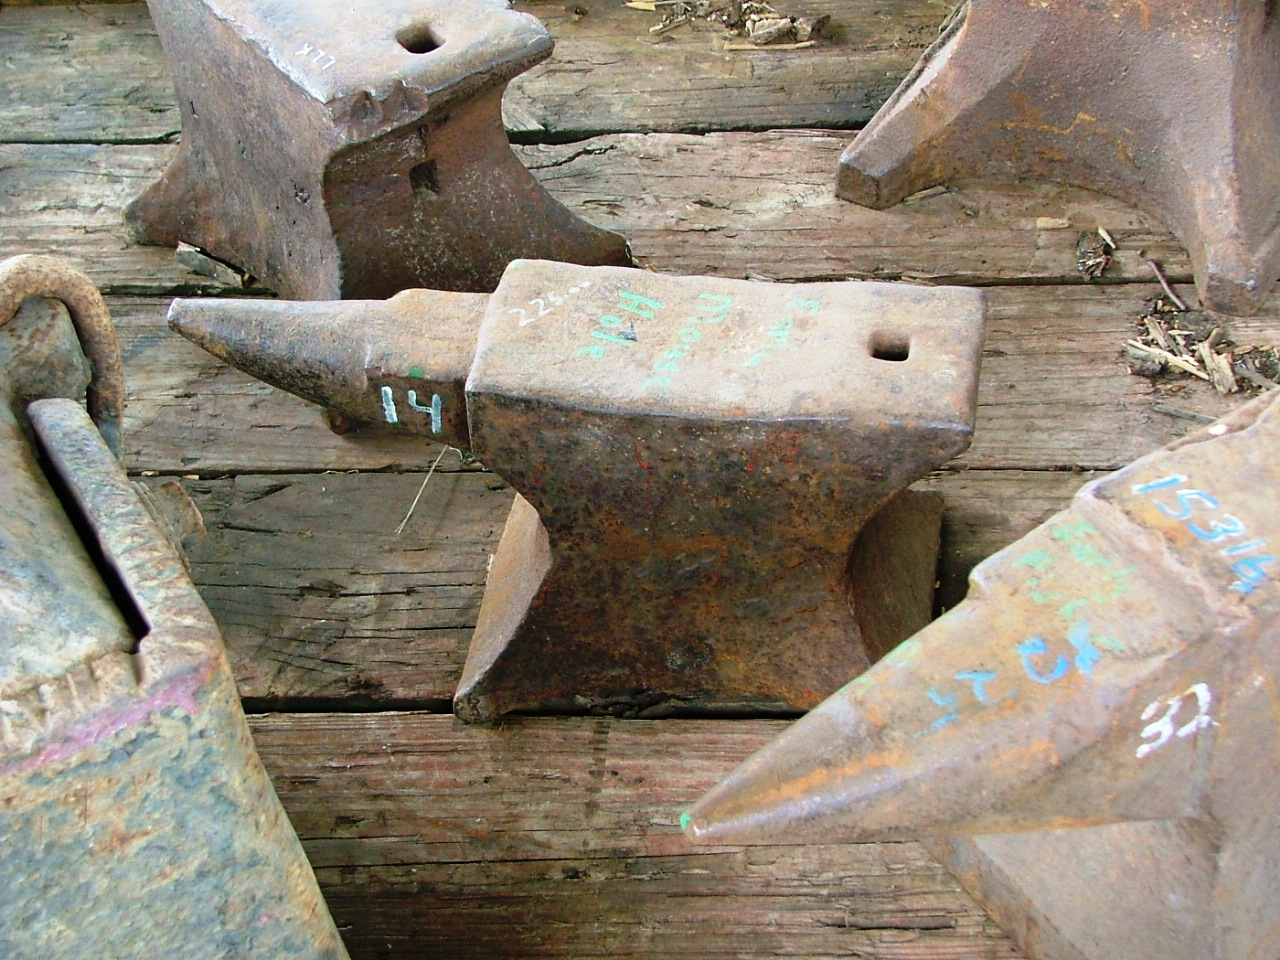 82 Blacksmith Anvil For Sale 400lb Hay Budden Anvil  : QuadStateAnvils22010 from topmotorcycle.us size 1280 x 960 jpeg 423kB